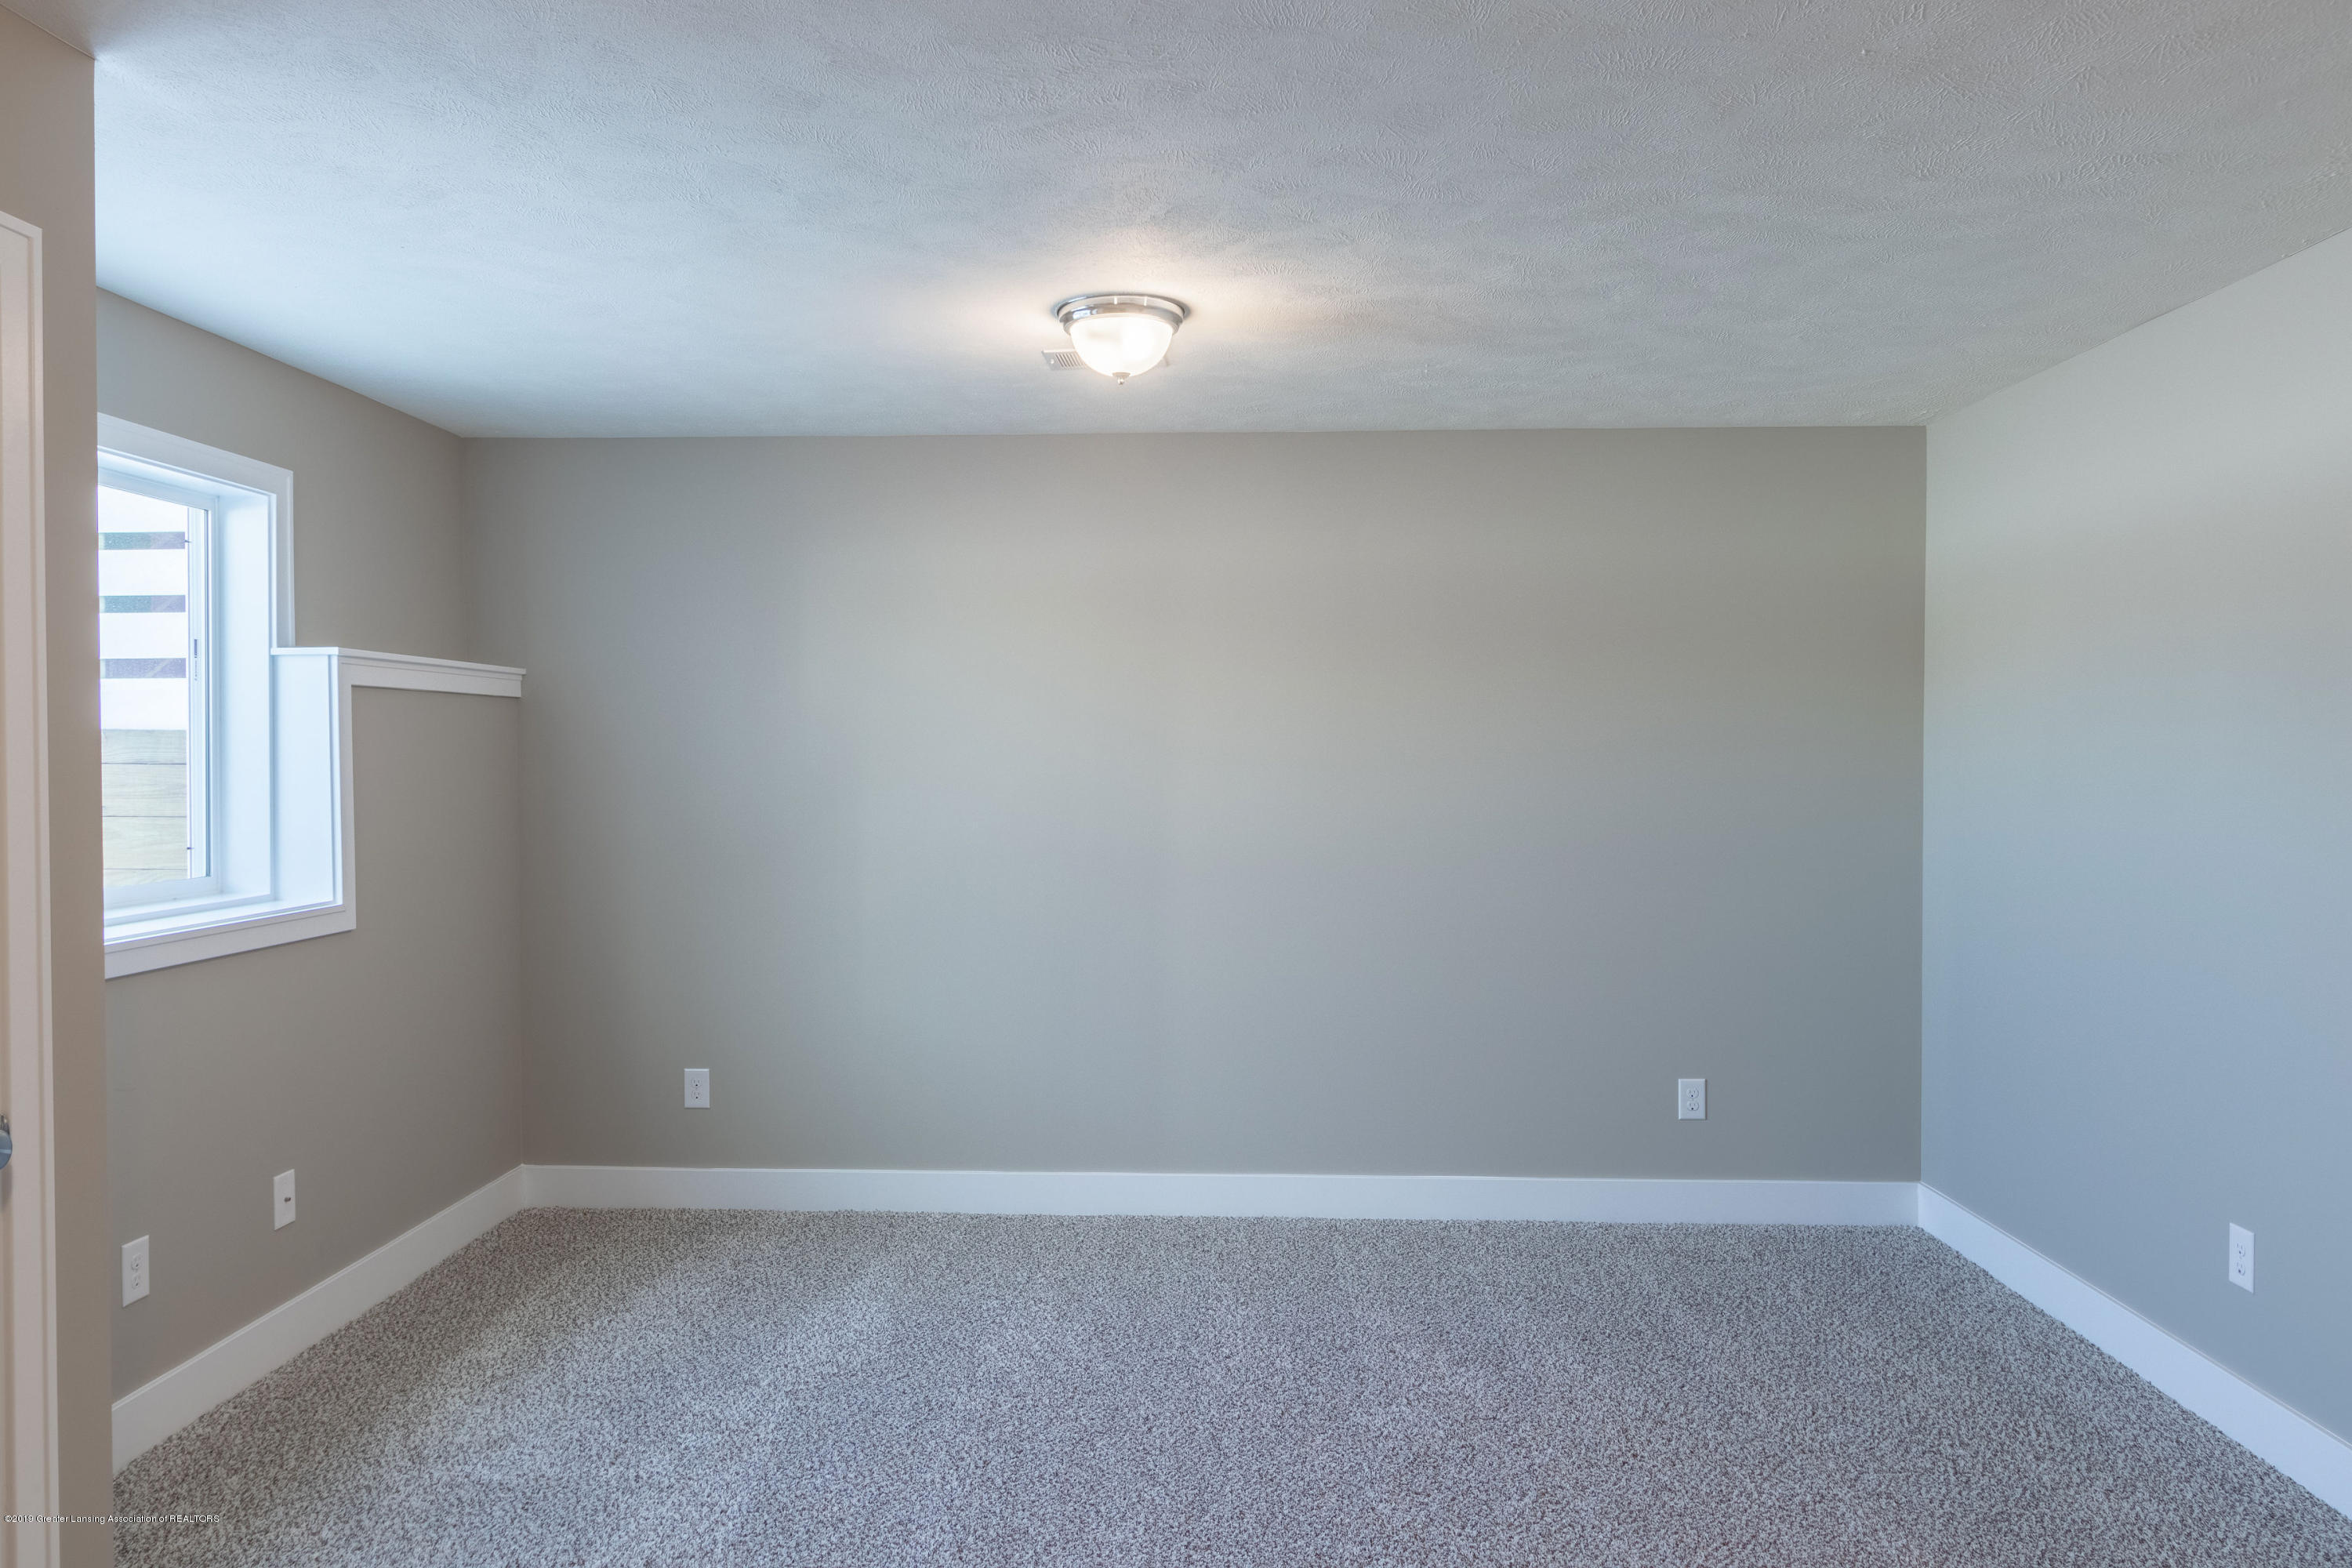 3848 Fossum Ln 10 - LL Bedroom - 28